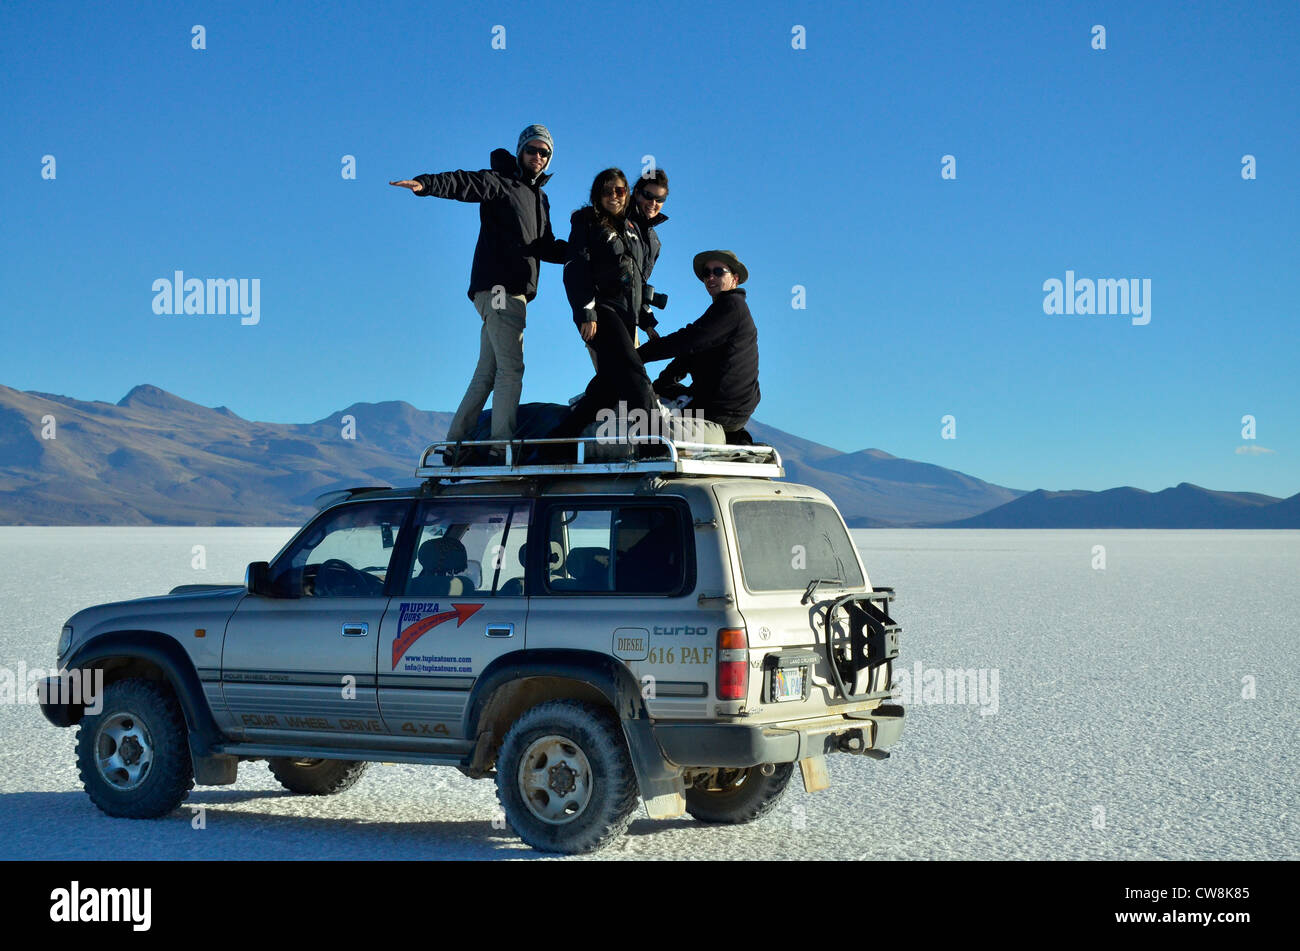 Uyuni Salaar, the biggest salt pan on earth. Andes Altiplano plateau of Bolivia. Altitude about 4000m. - Stock Image